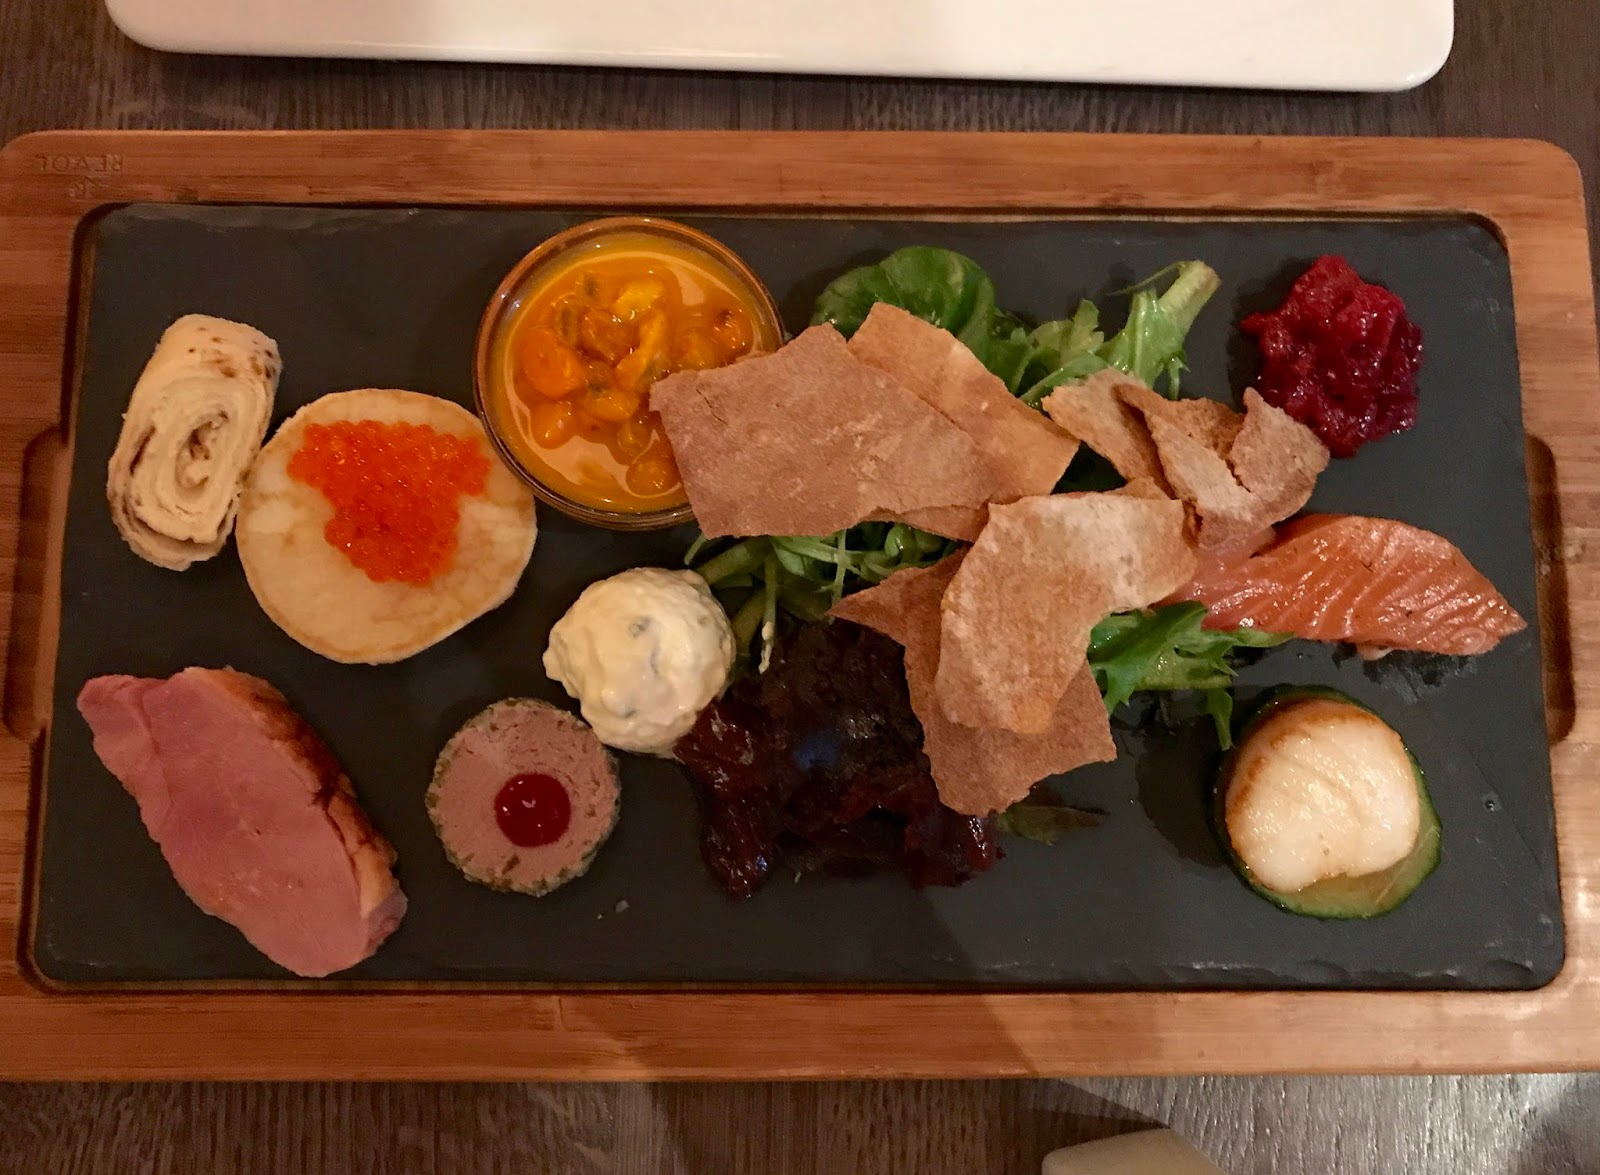 Traditional japanese wedding foods - The Starter Platter Had Many Traditional Norwegian Foods Including Reindeer Patte Dried Whale Fermented Salmon Duck Goat Cheese